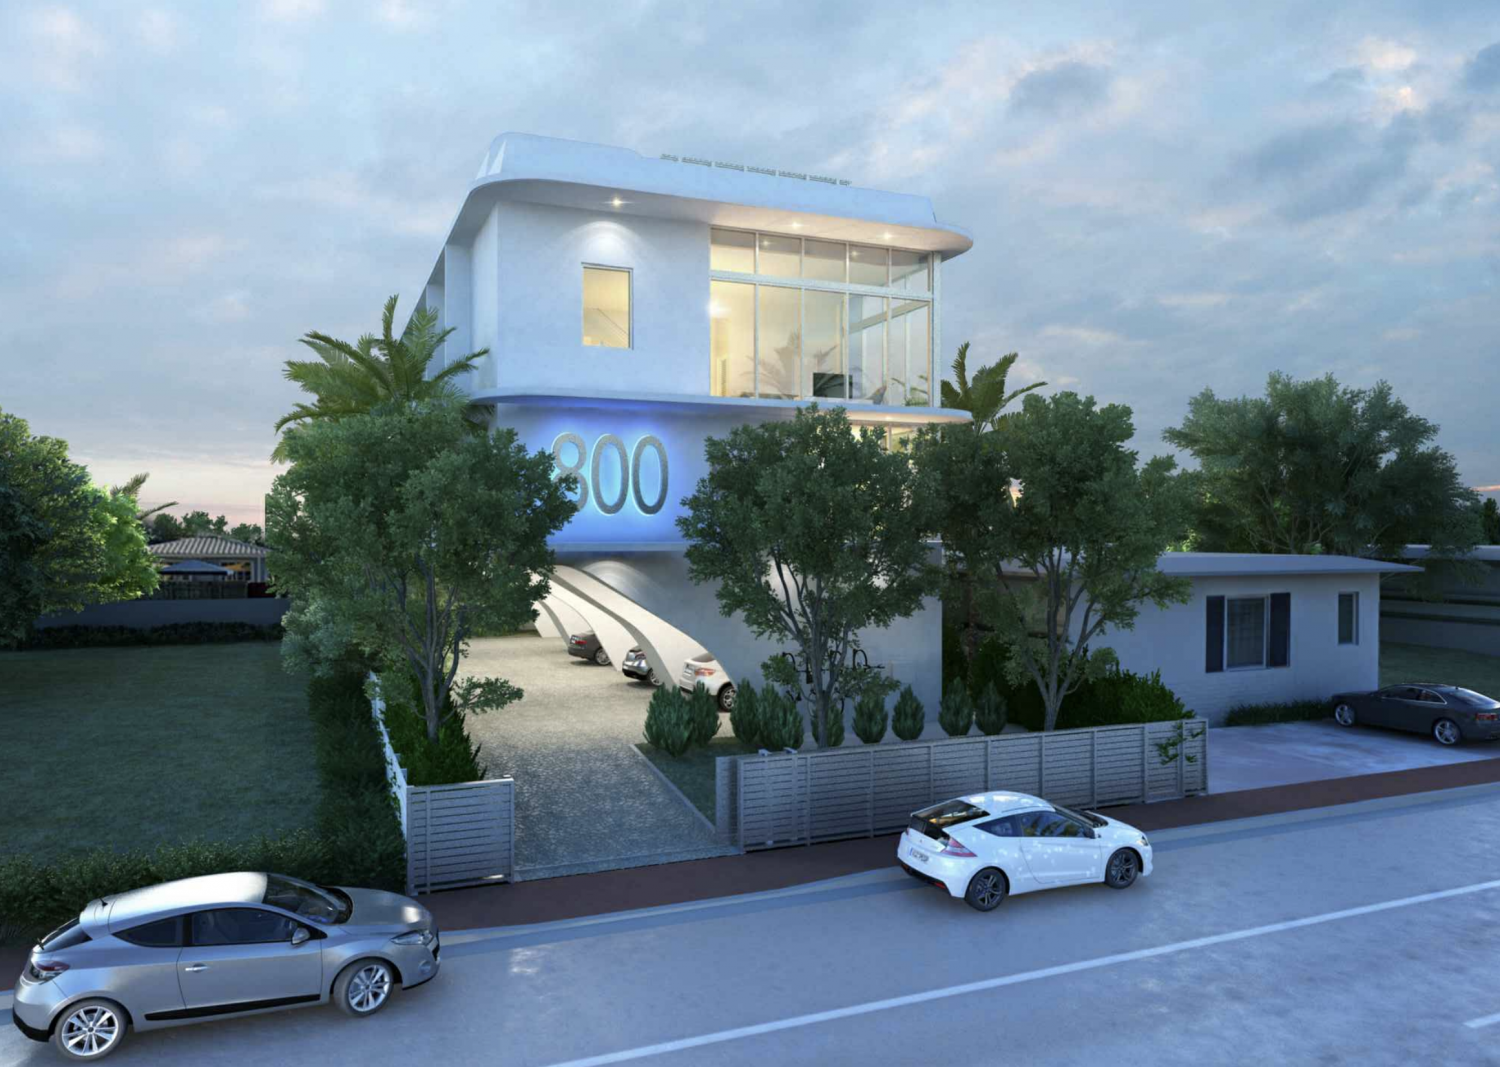 800 84th Street. Courtesy of CDS Architecture and Planning.